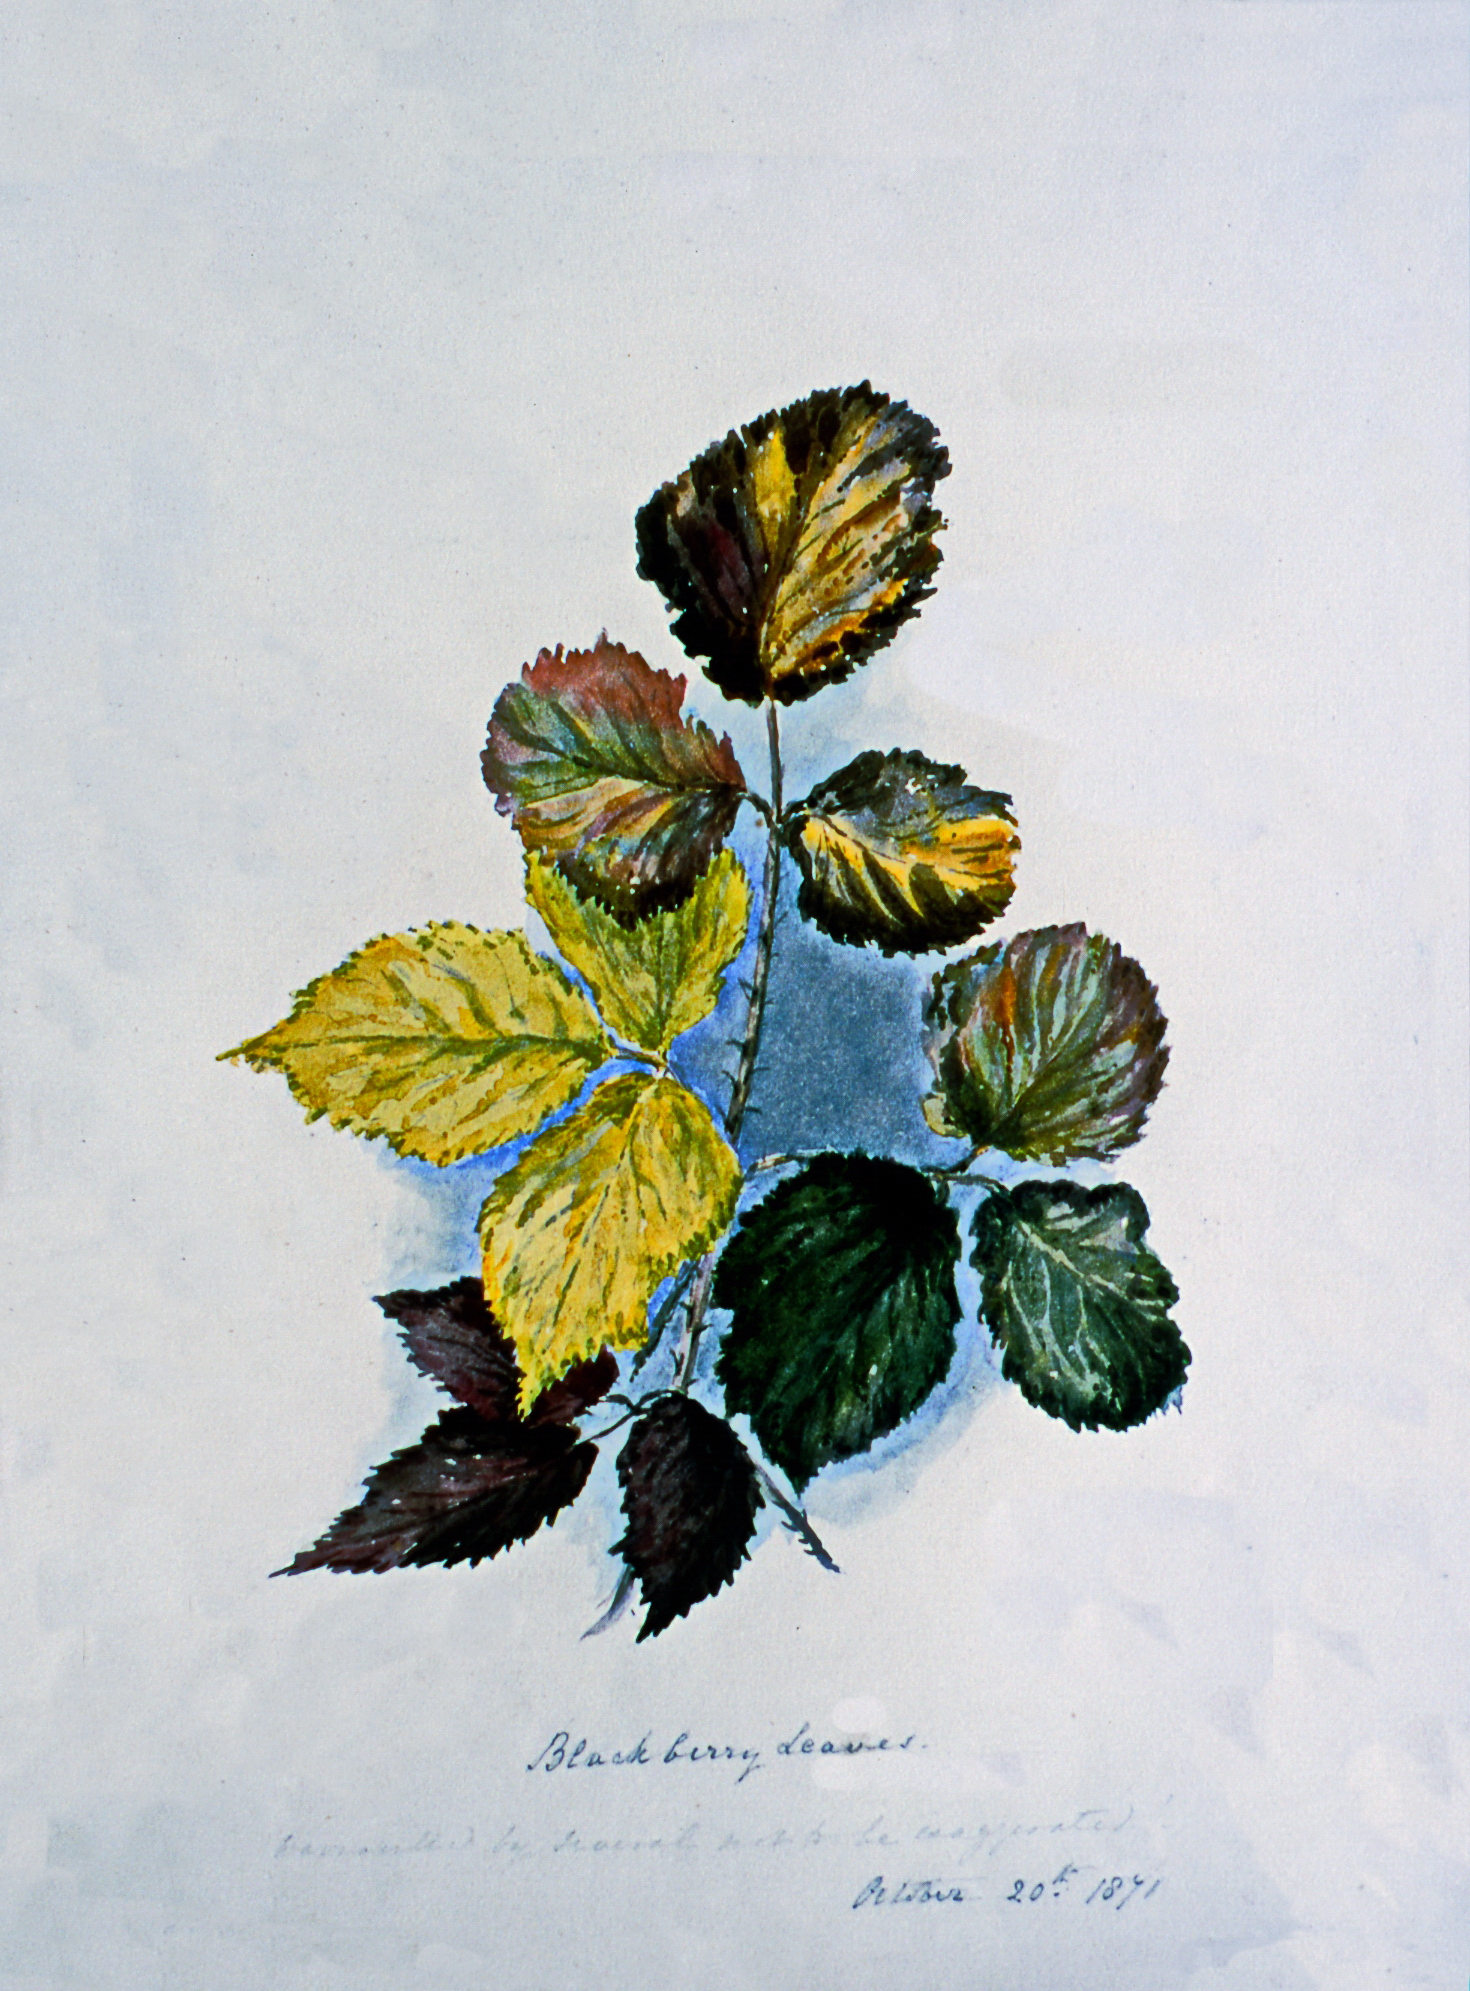 Blackberry leaves- Harvested by Julia, work to be exaggerated October 20th, 1871 , August 1871, Julia Bullock Webster, watercolour on paper, 35.5 cm x 25.6 cm, 2003.02.23, gift of The Grist Mill at Keremeos